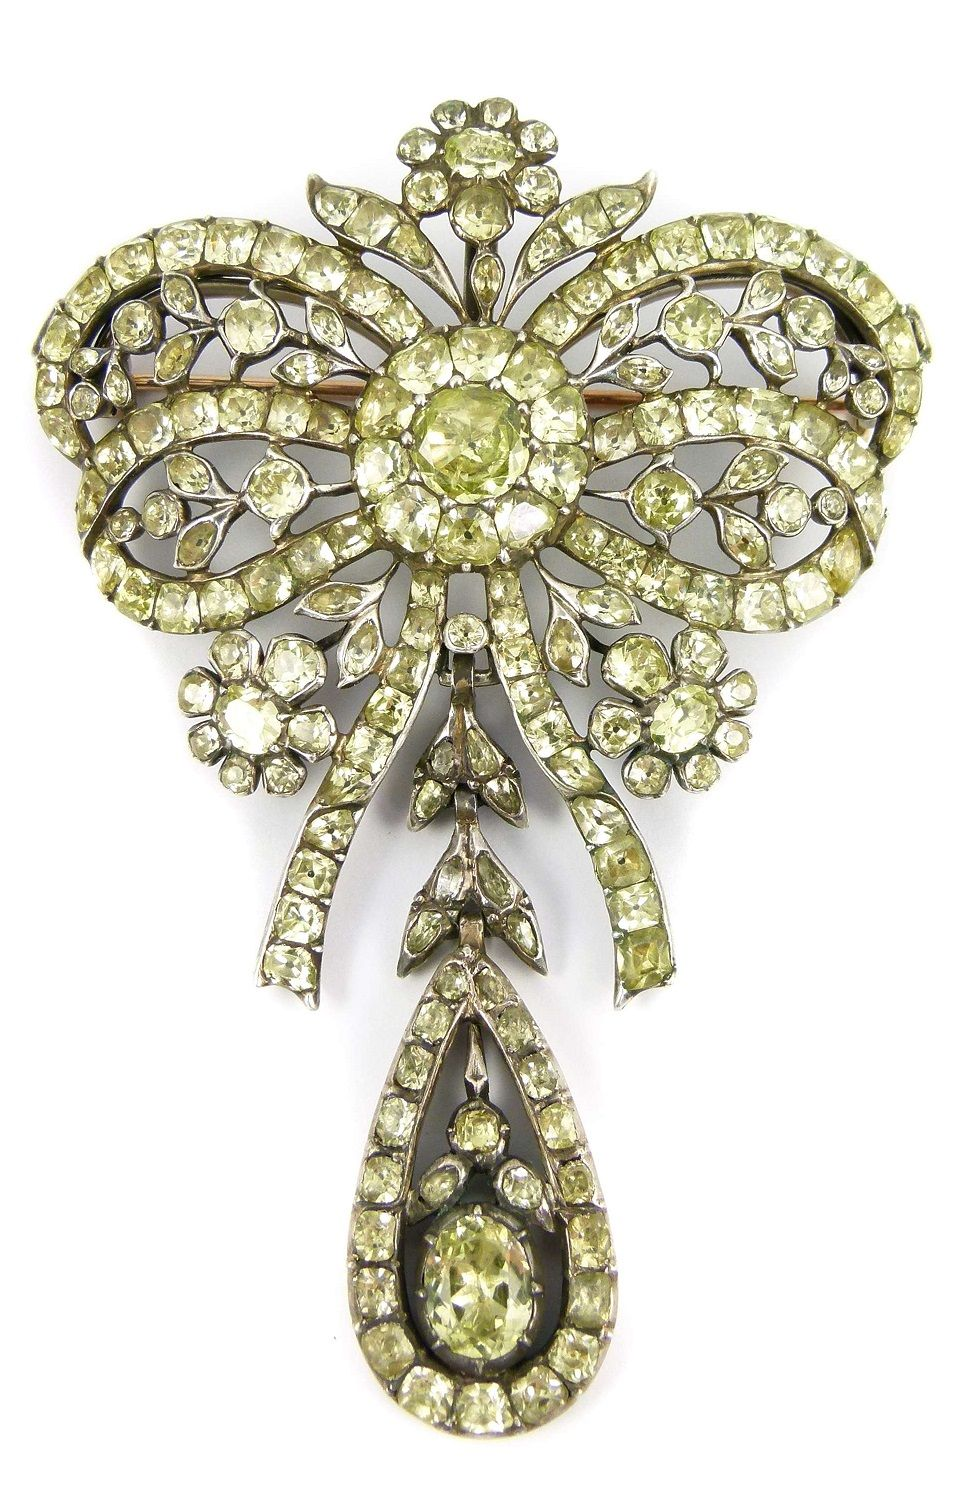 18th century chrysolite ribbon bow and drop brooch-pendant, Portuguese, c.1770